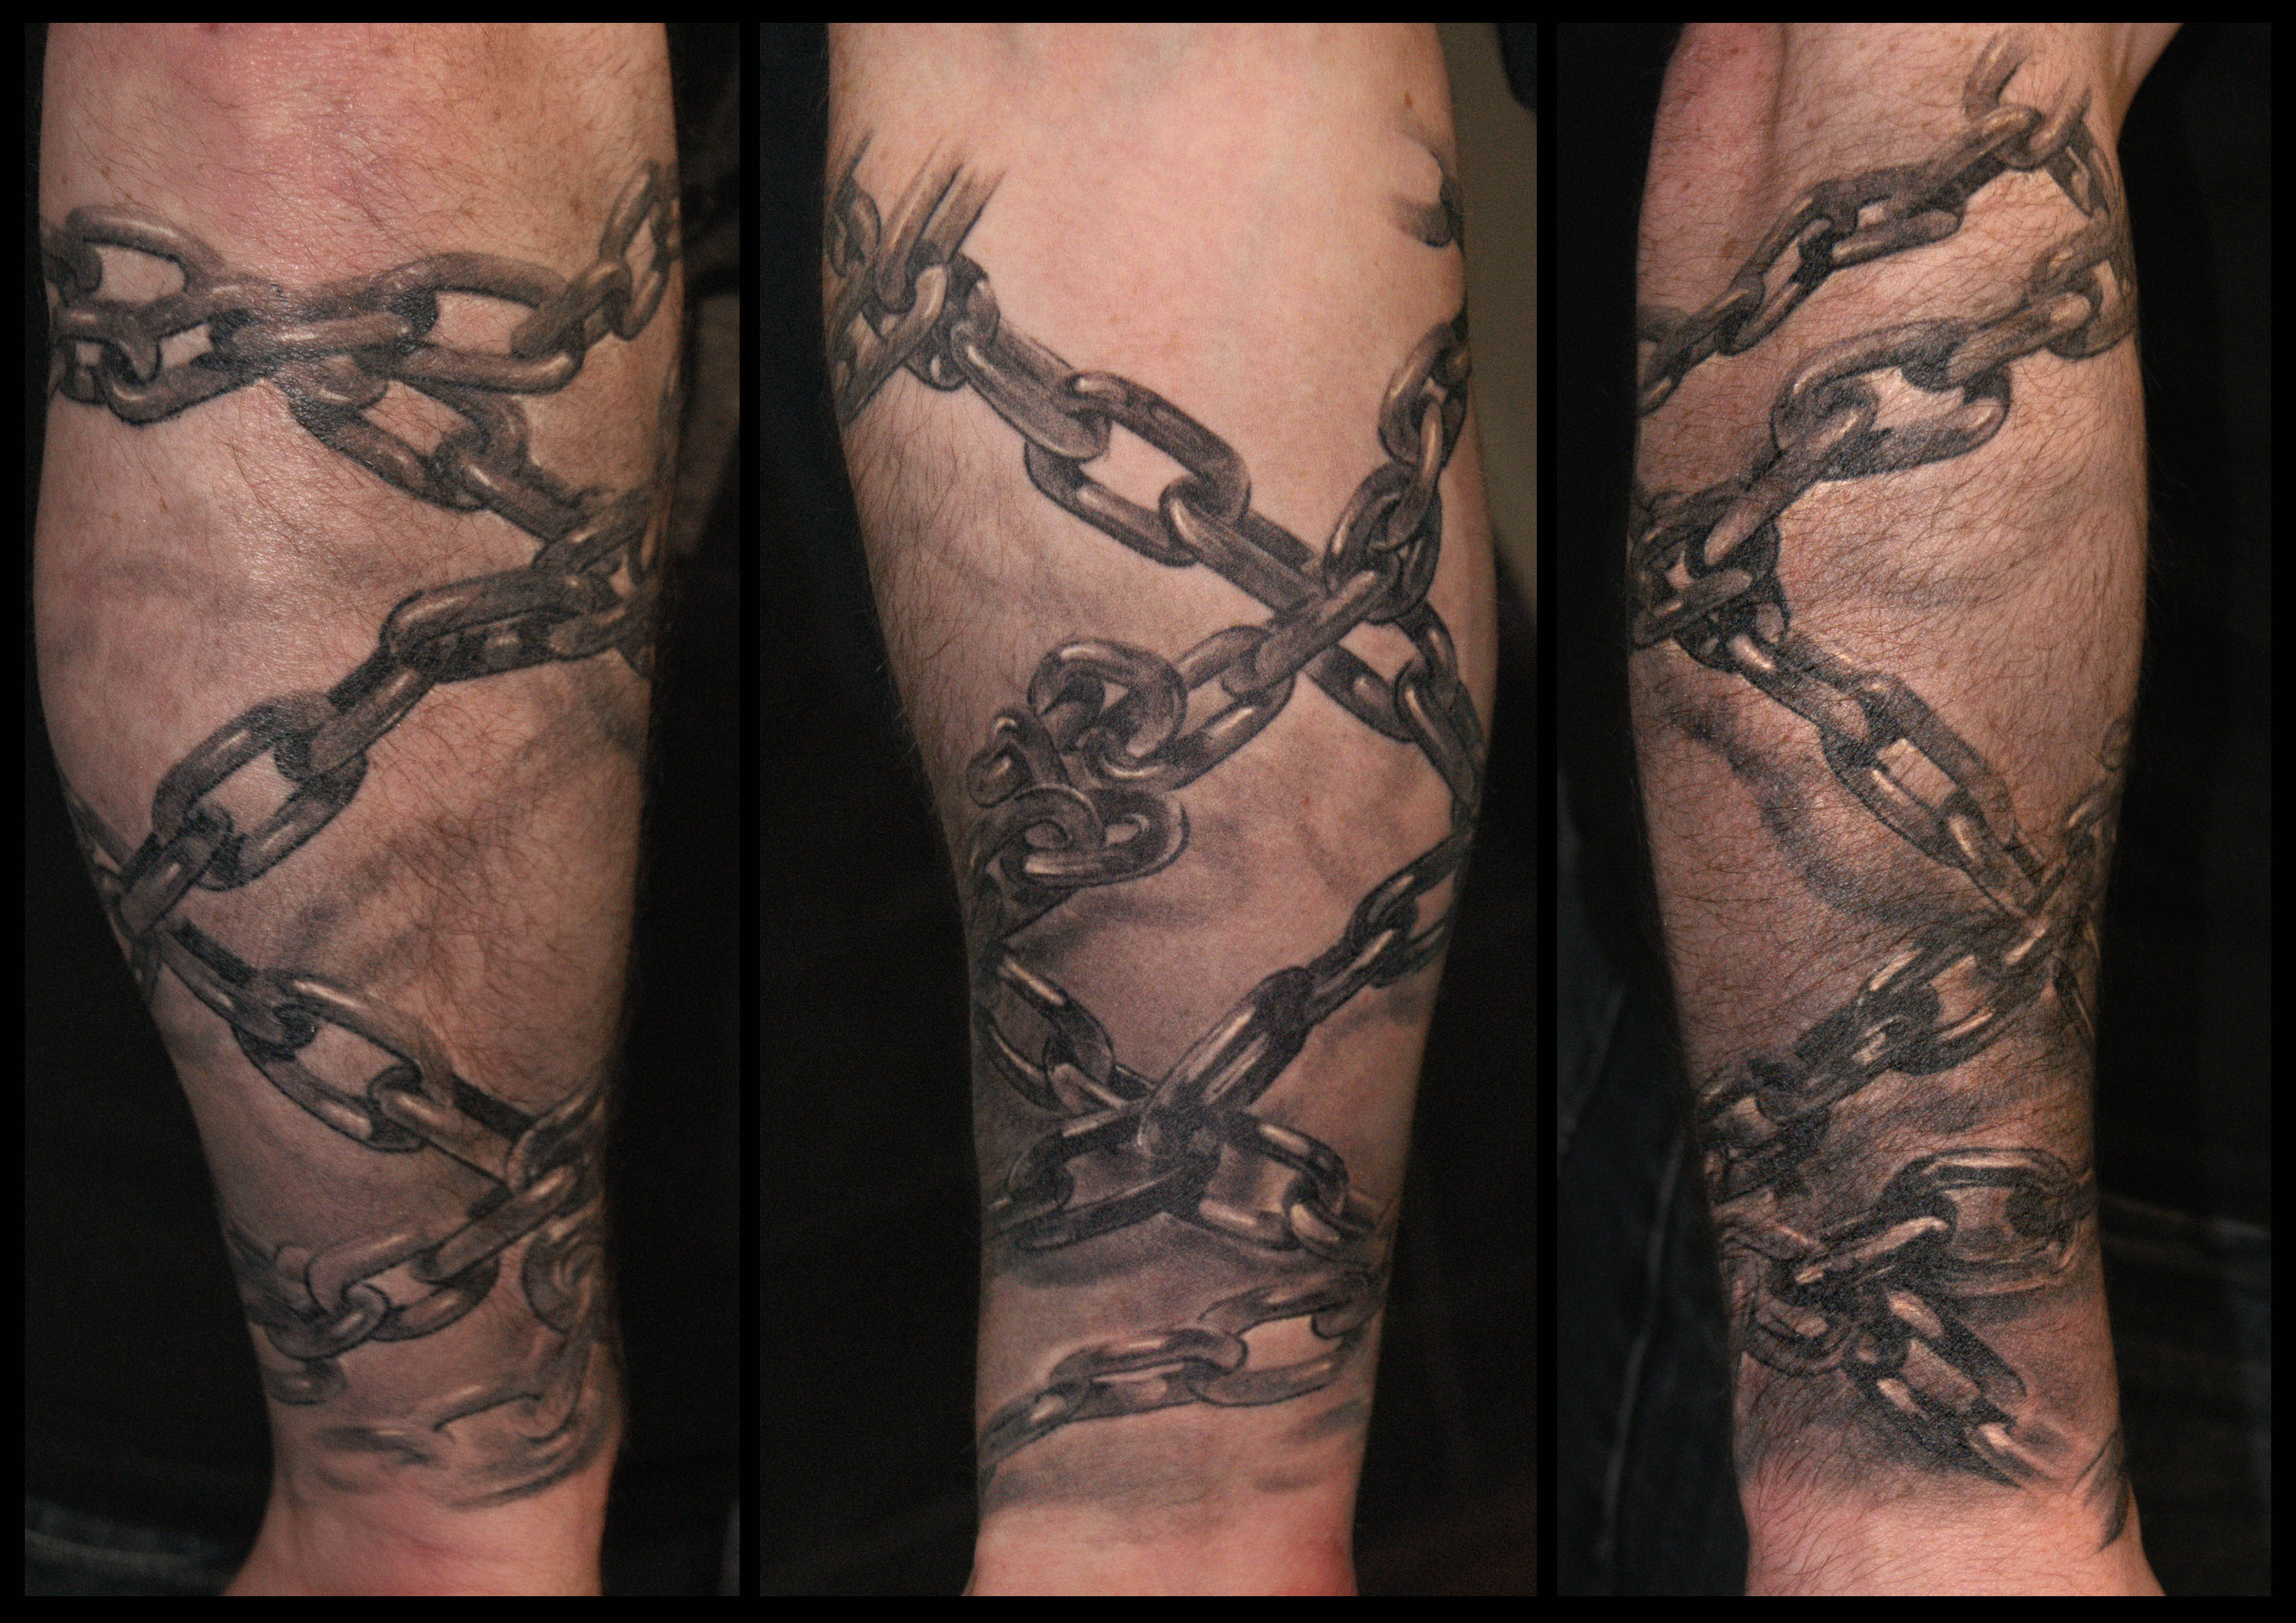 chain tattoo images designs rh tattoostime com tattoos of insects tattoos of broken chains